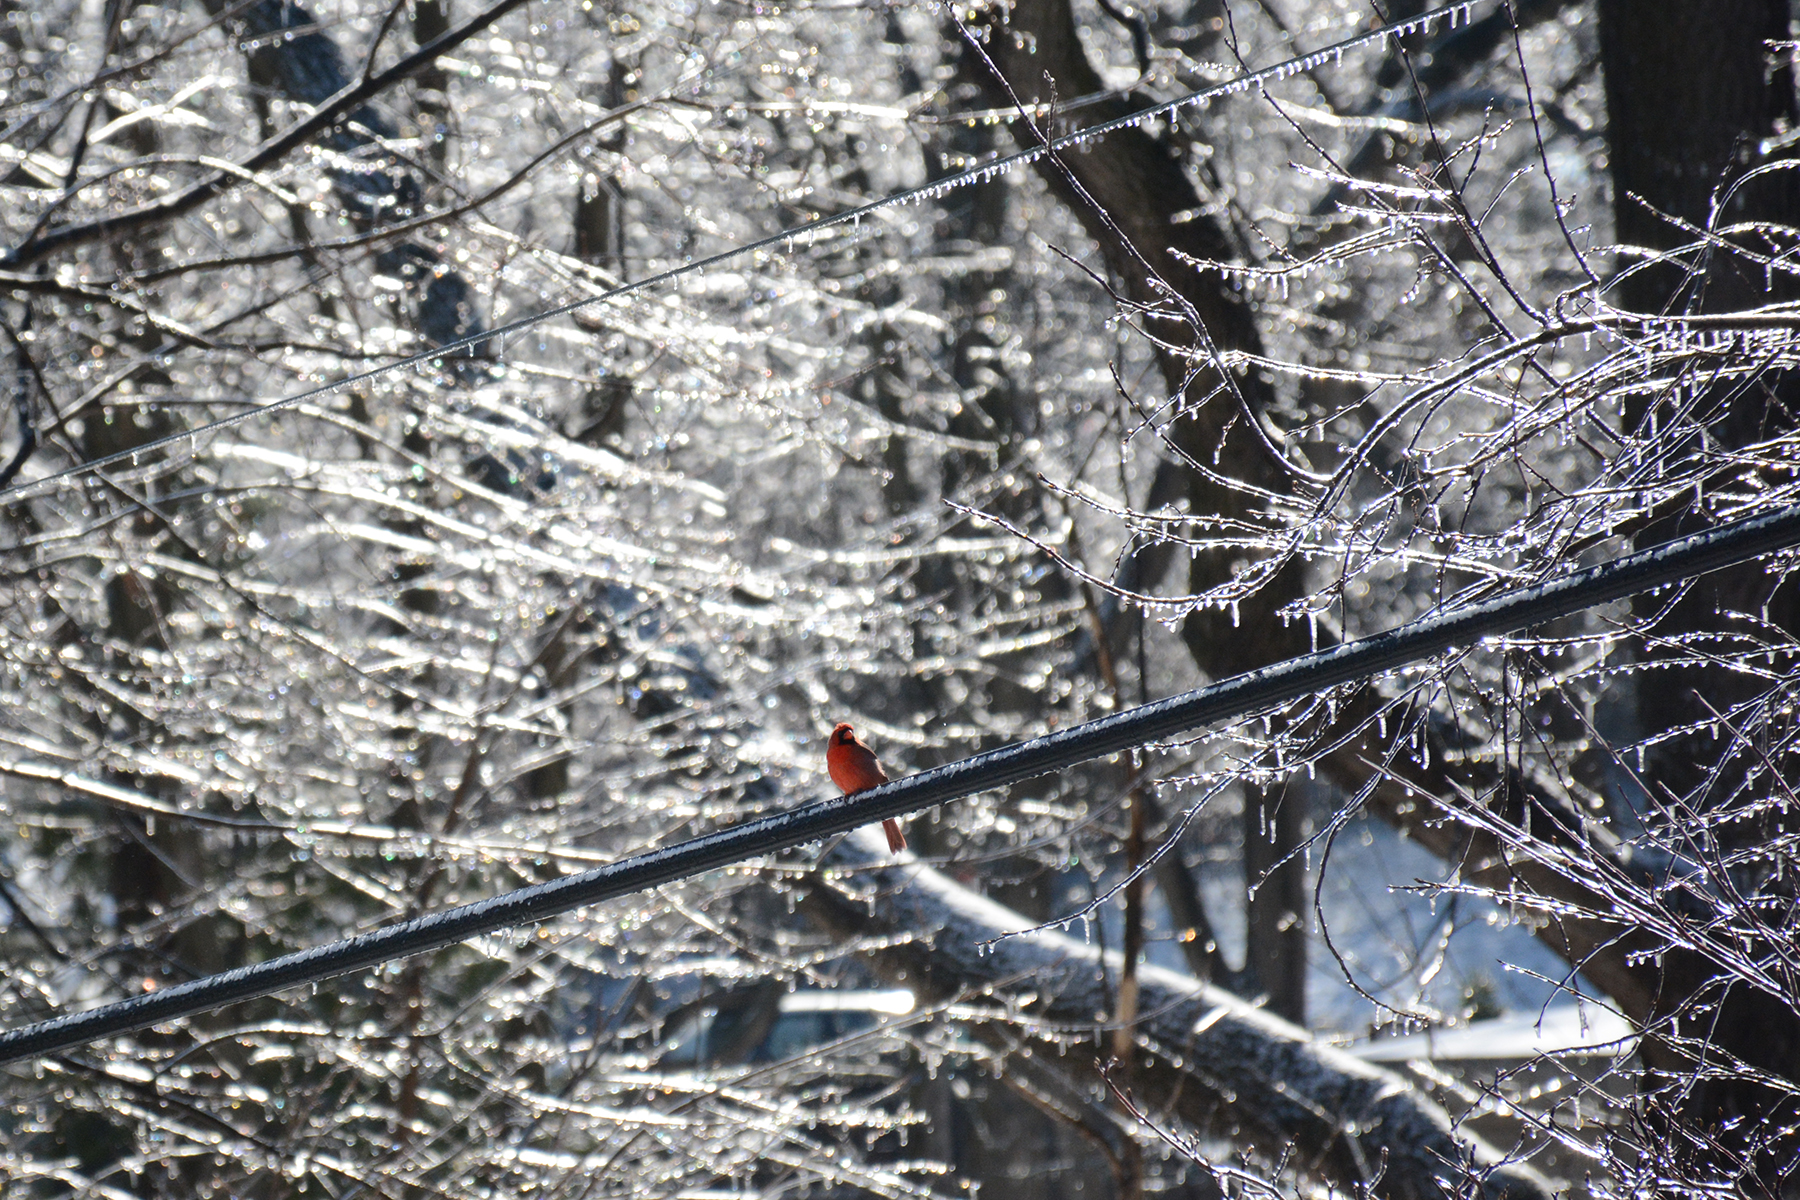 2016-03-25_backyard_icemelt-cardinal